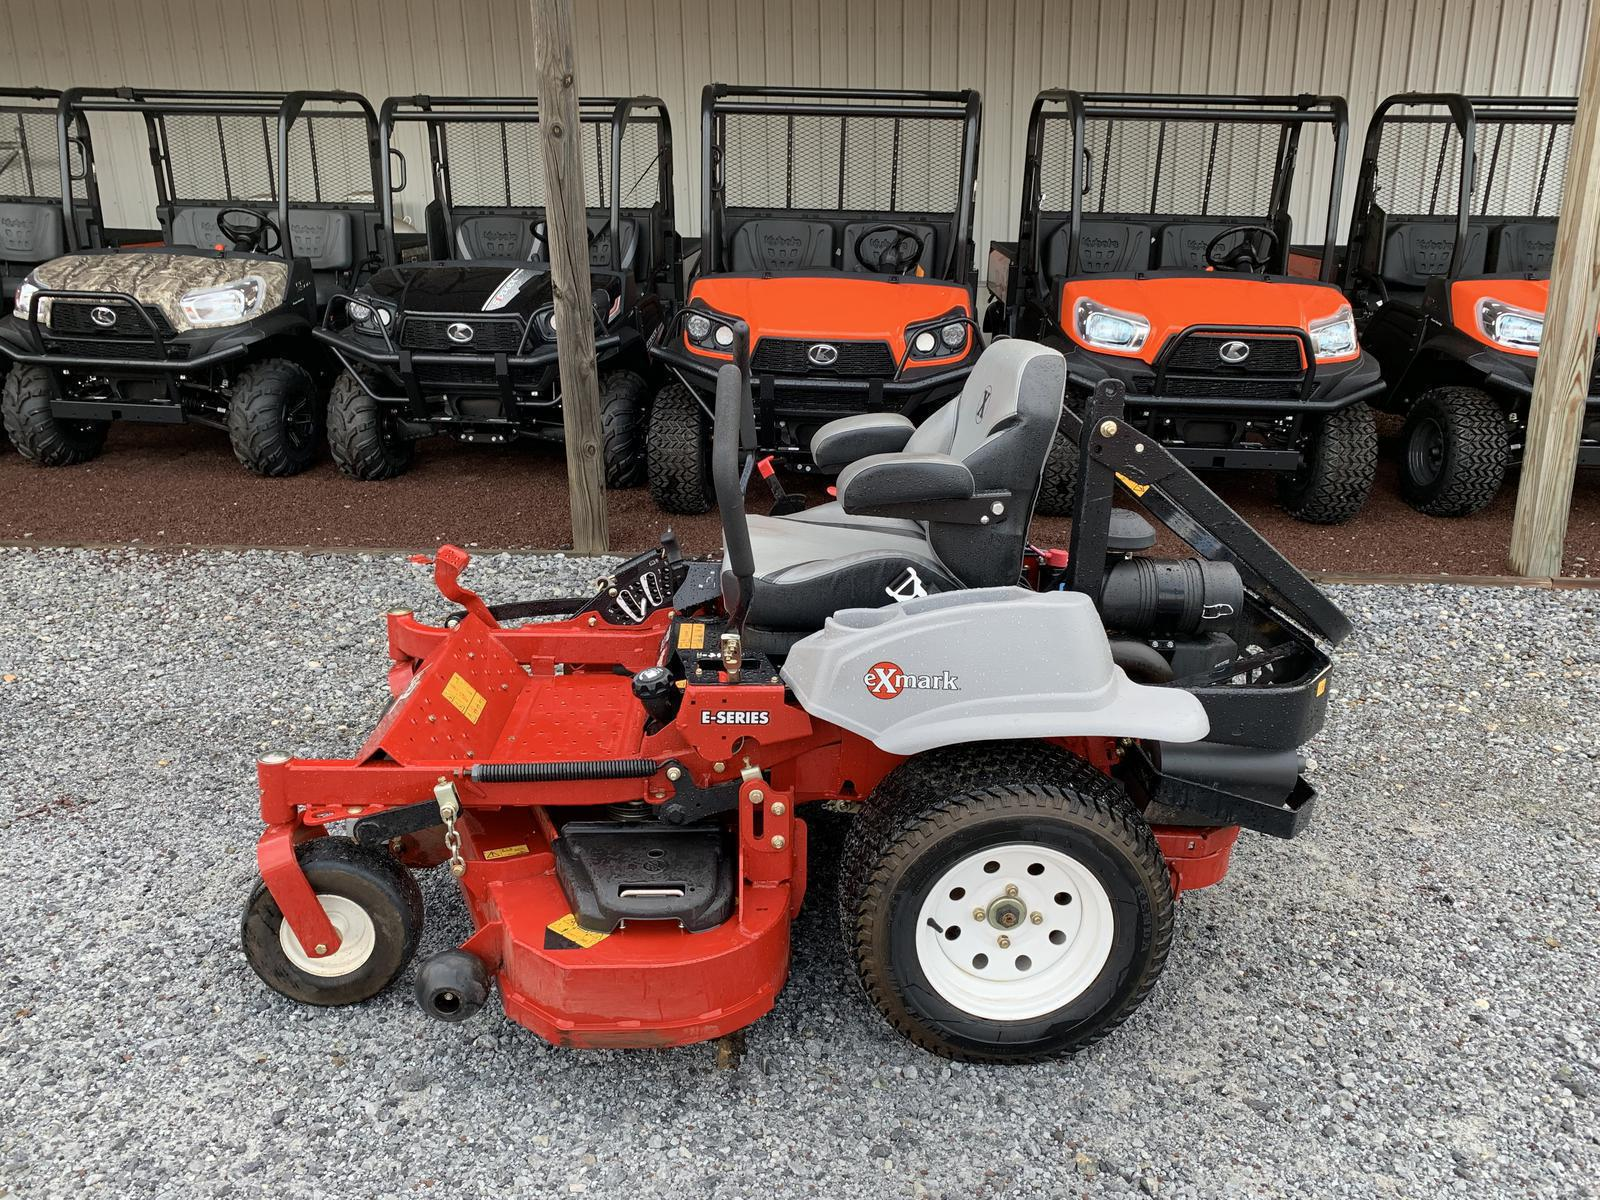 In-Stock New and Used Models For Sale in Cochranville, PA Stoltzfus